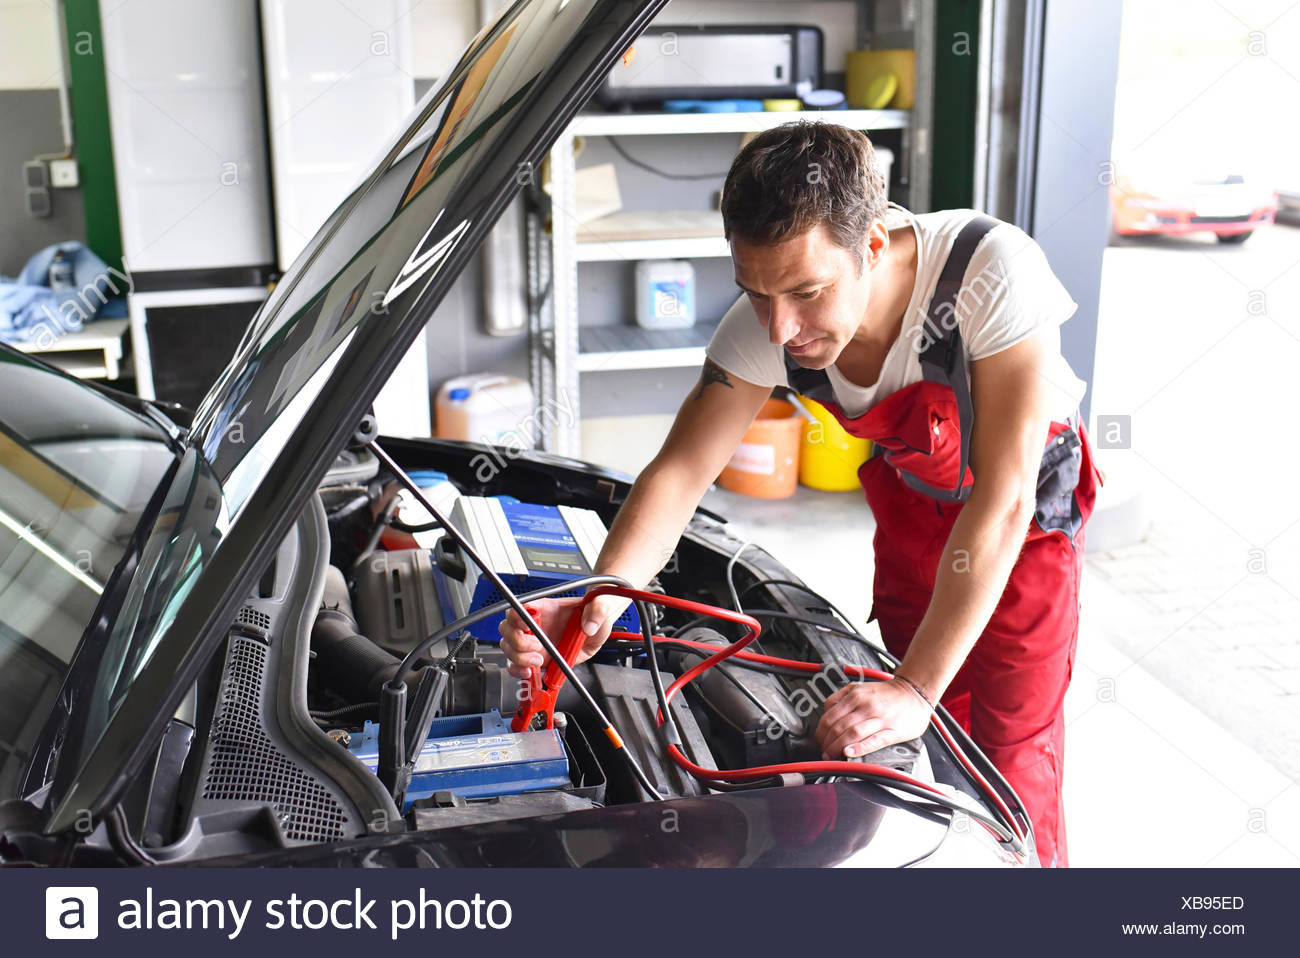 Garage Auto 95 Car Mechanic Working In Repair Garage Reloading Car Battery Stock